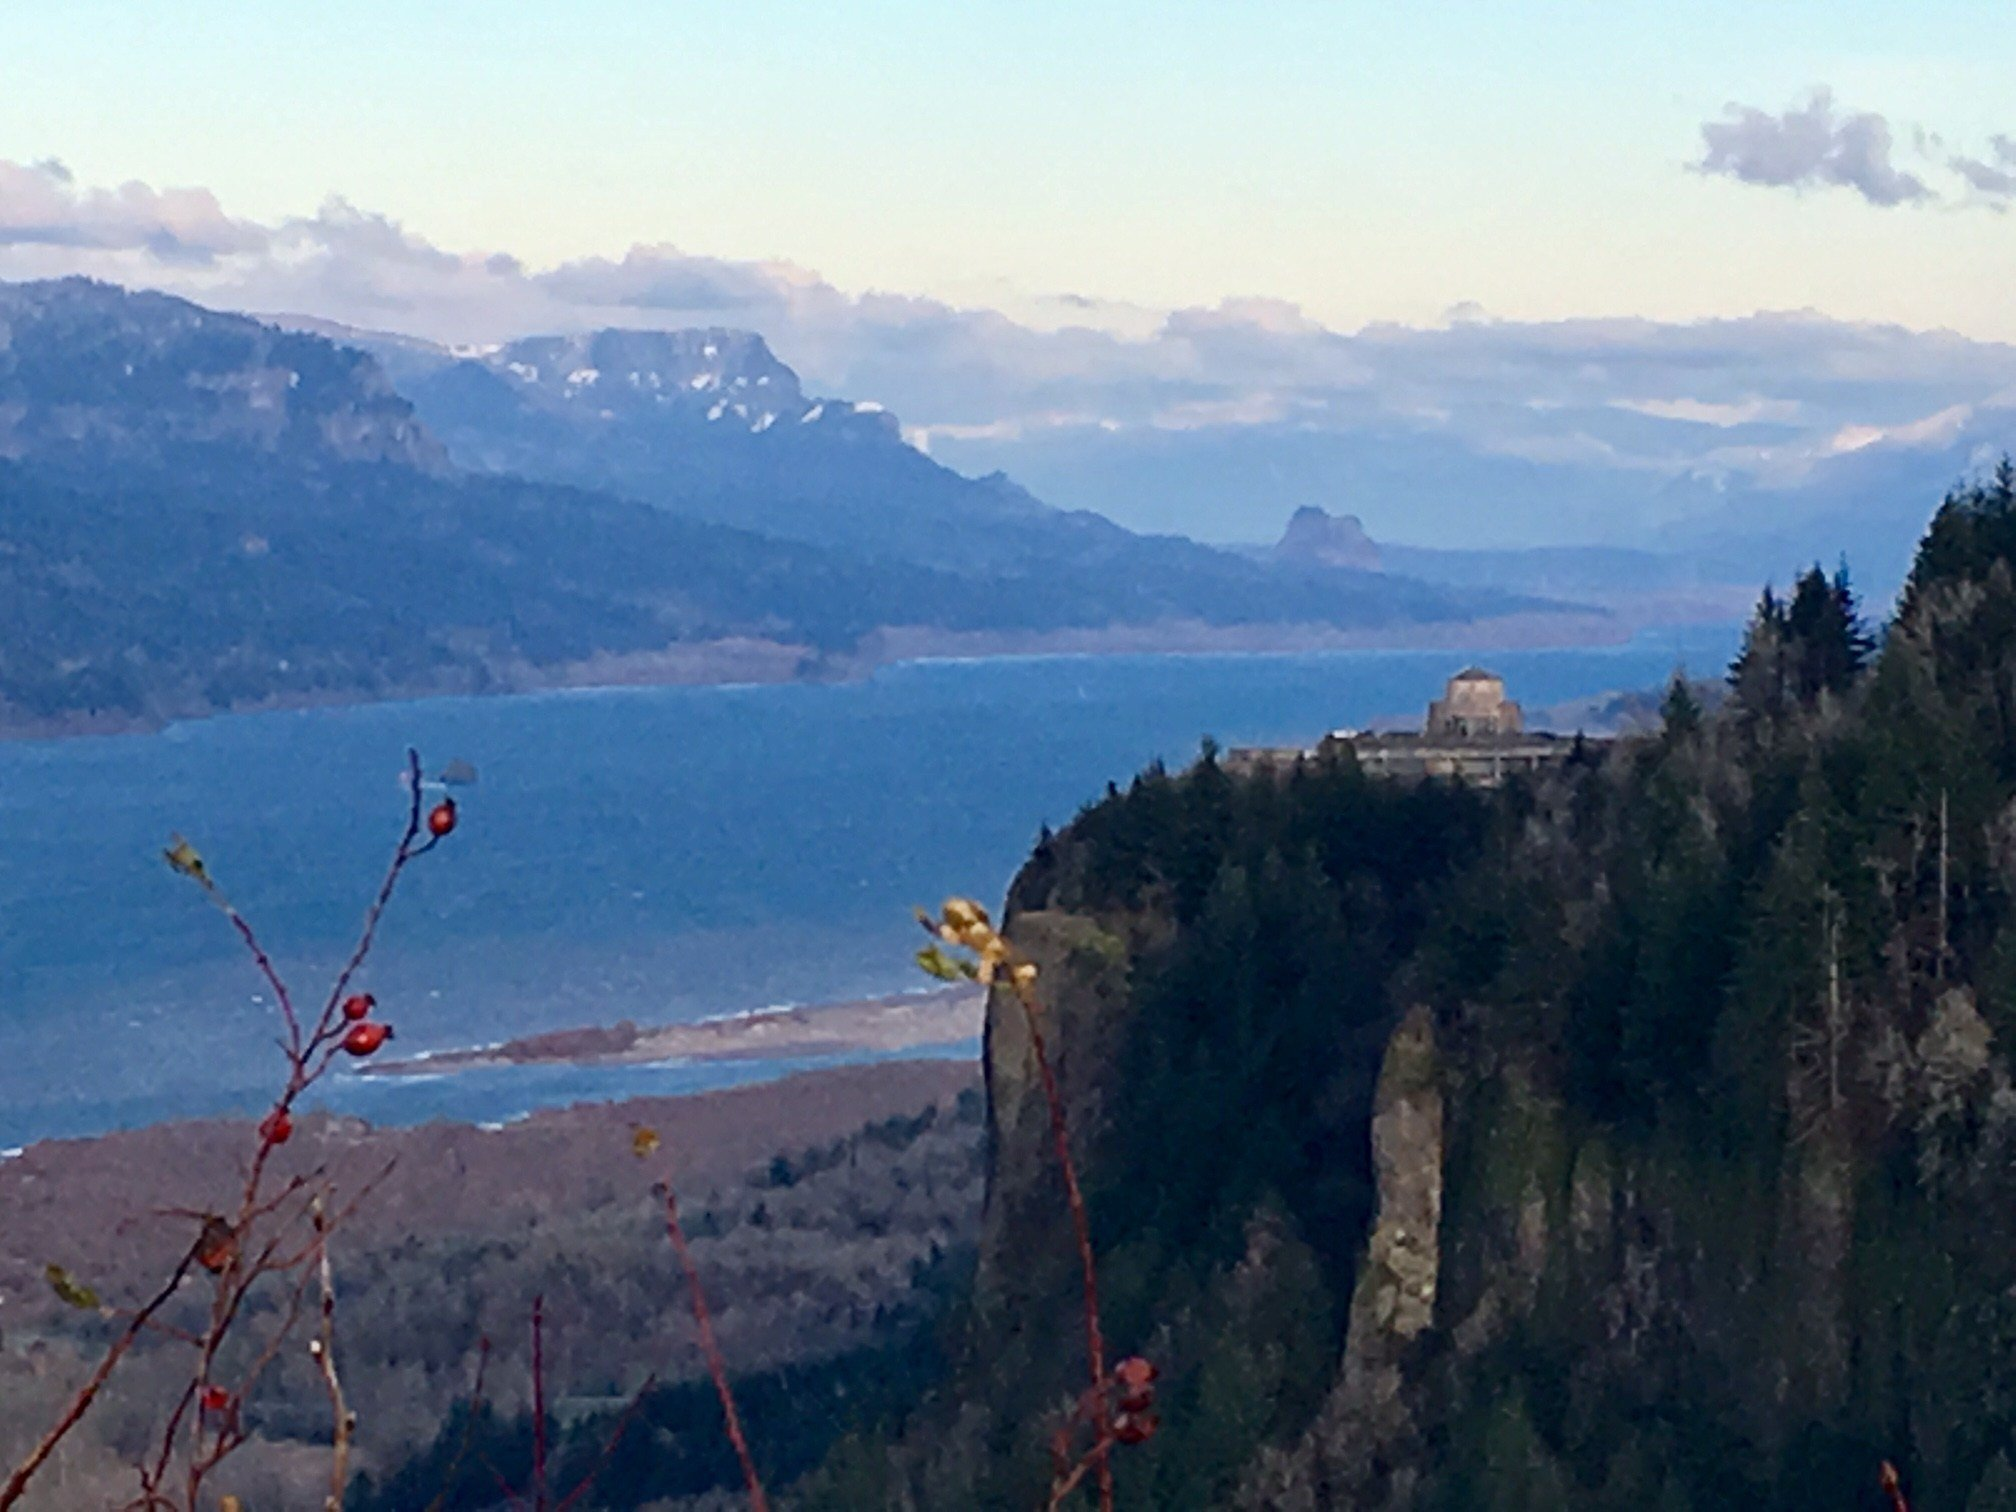 The Columbia River Gorge near Crown Point Wednesday. (KPTV)